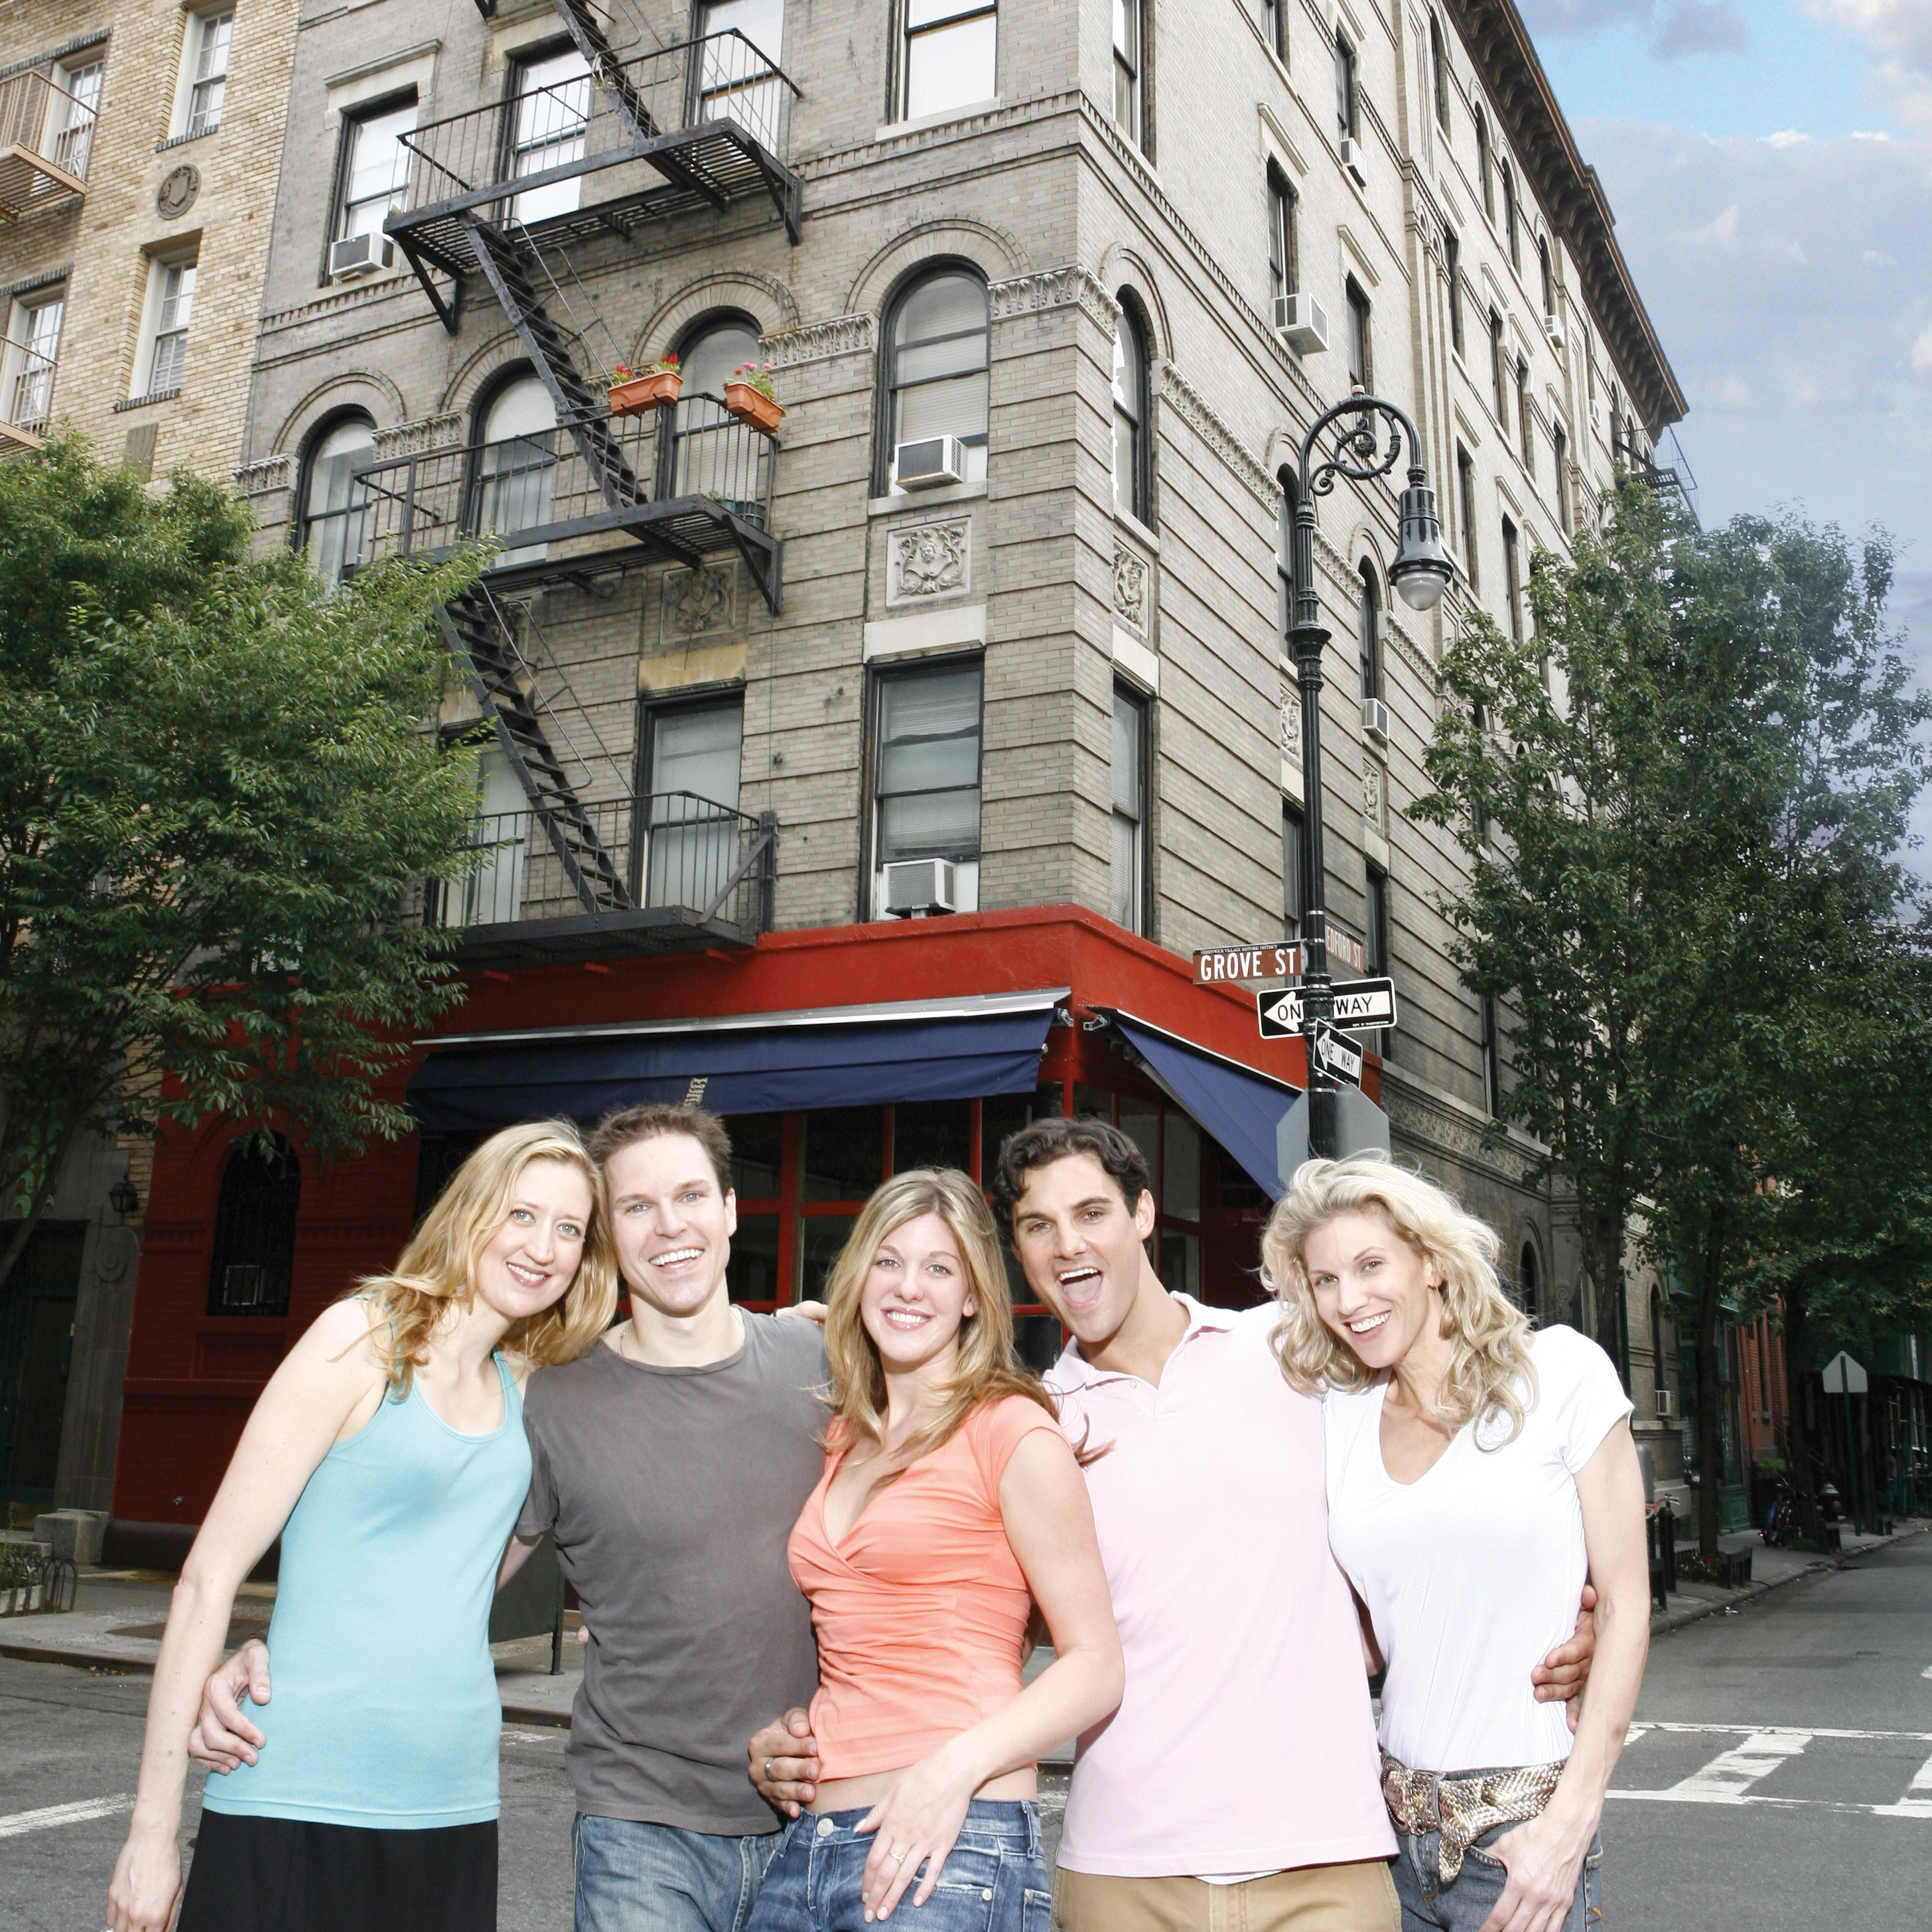 NY TV and Movie Sites Tour by On Location Tours